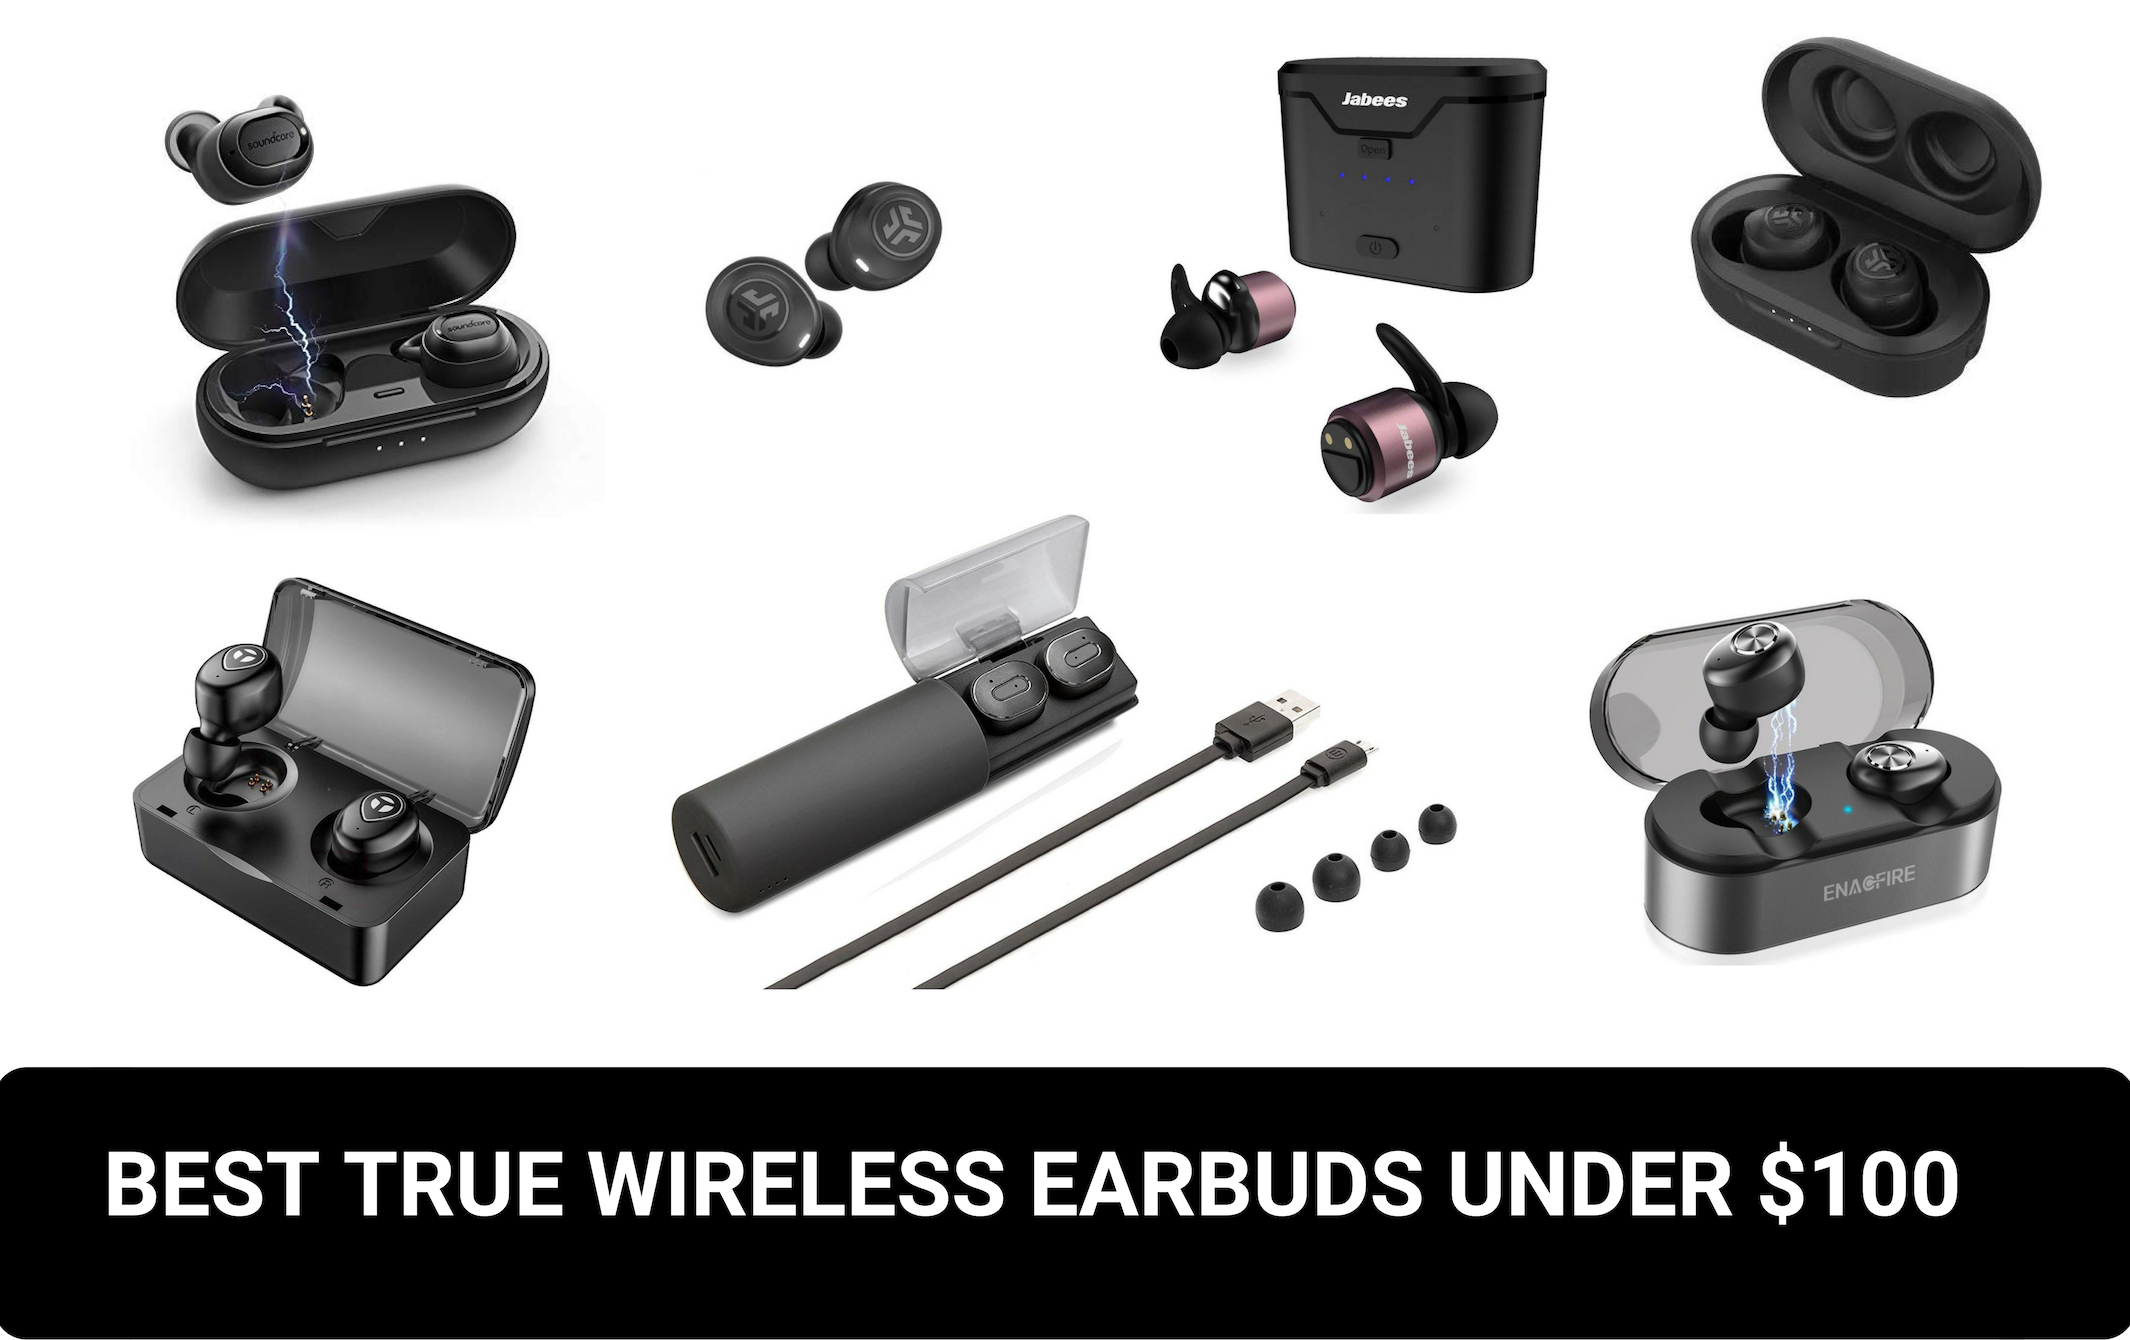 3e2679f2128 Best true wireless earbuds under $100